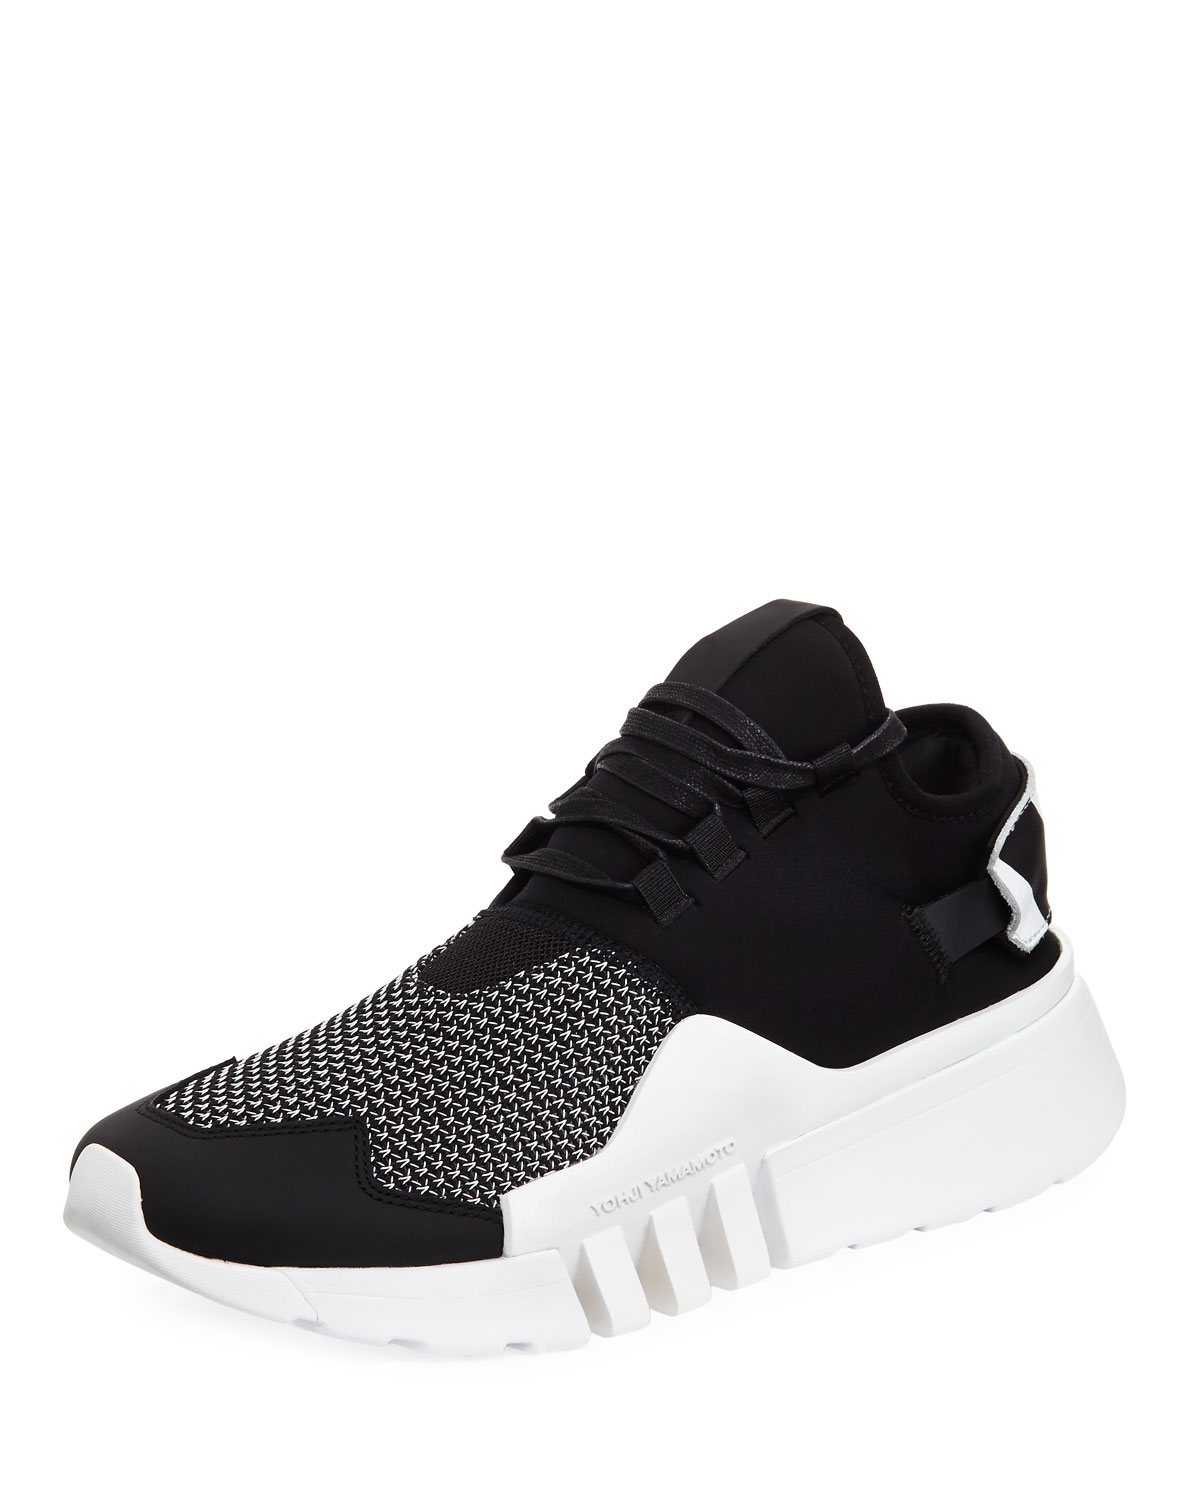 385634ac4 Y-3 Men s Ayero Leather   Mesh Sneaker